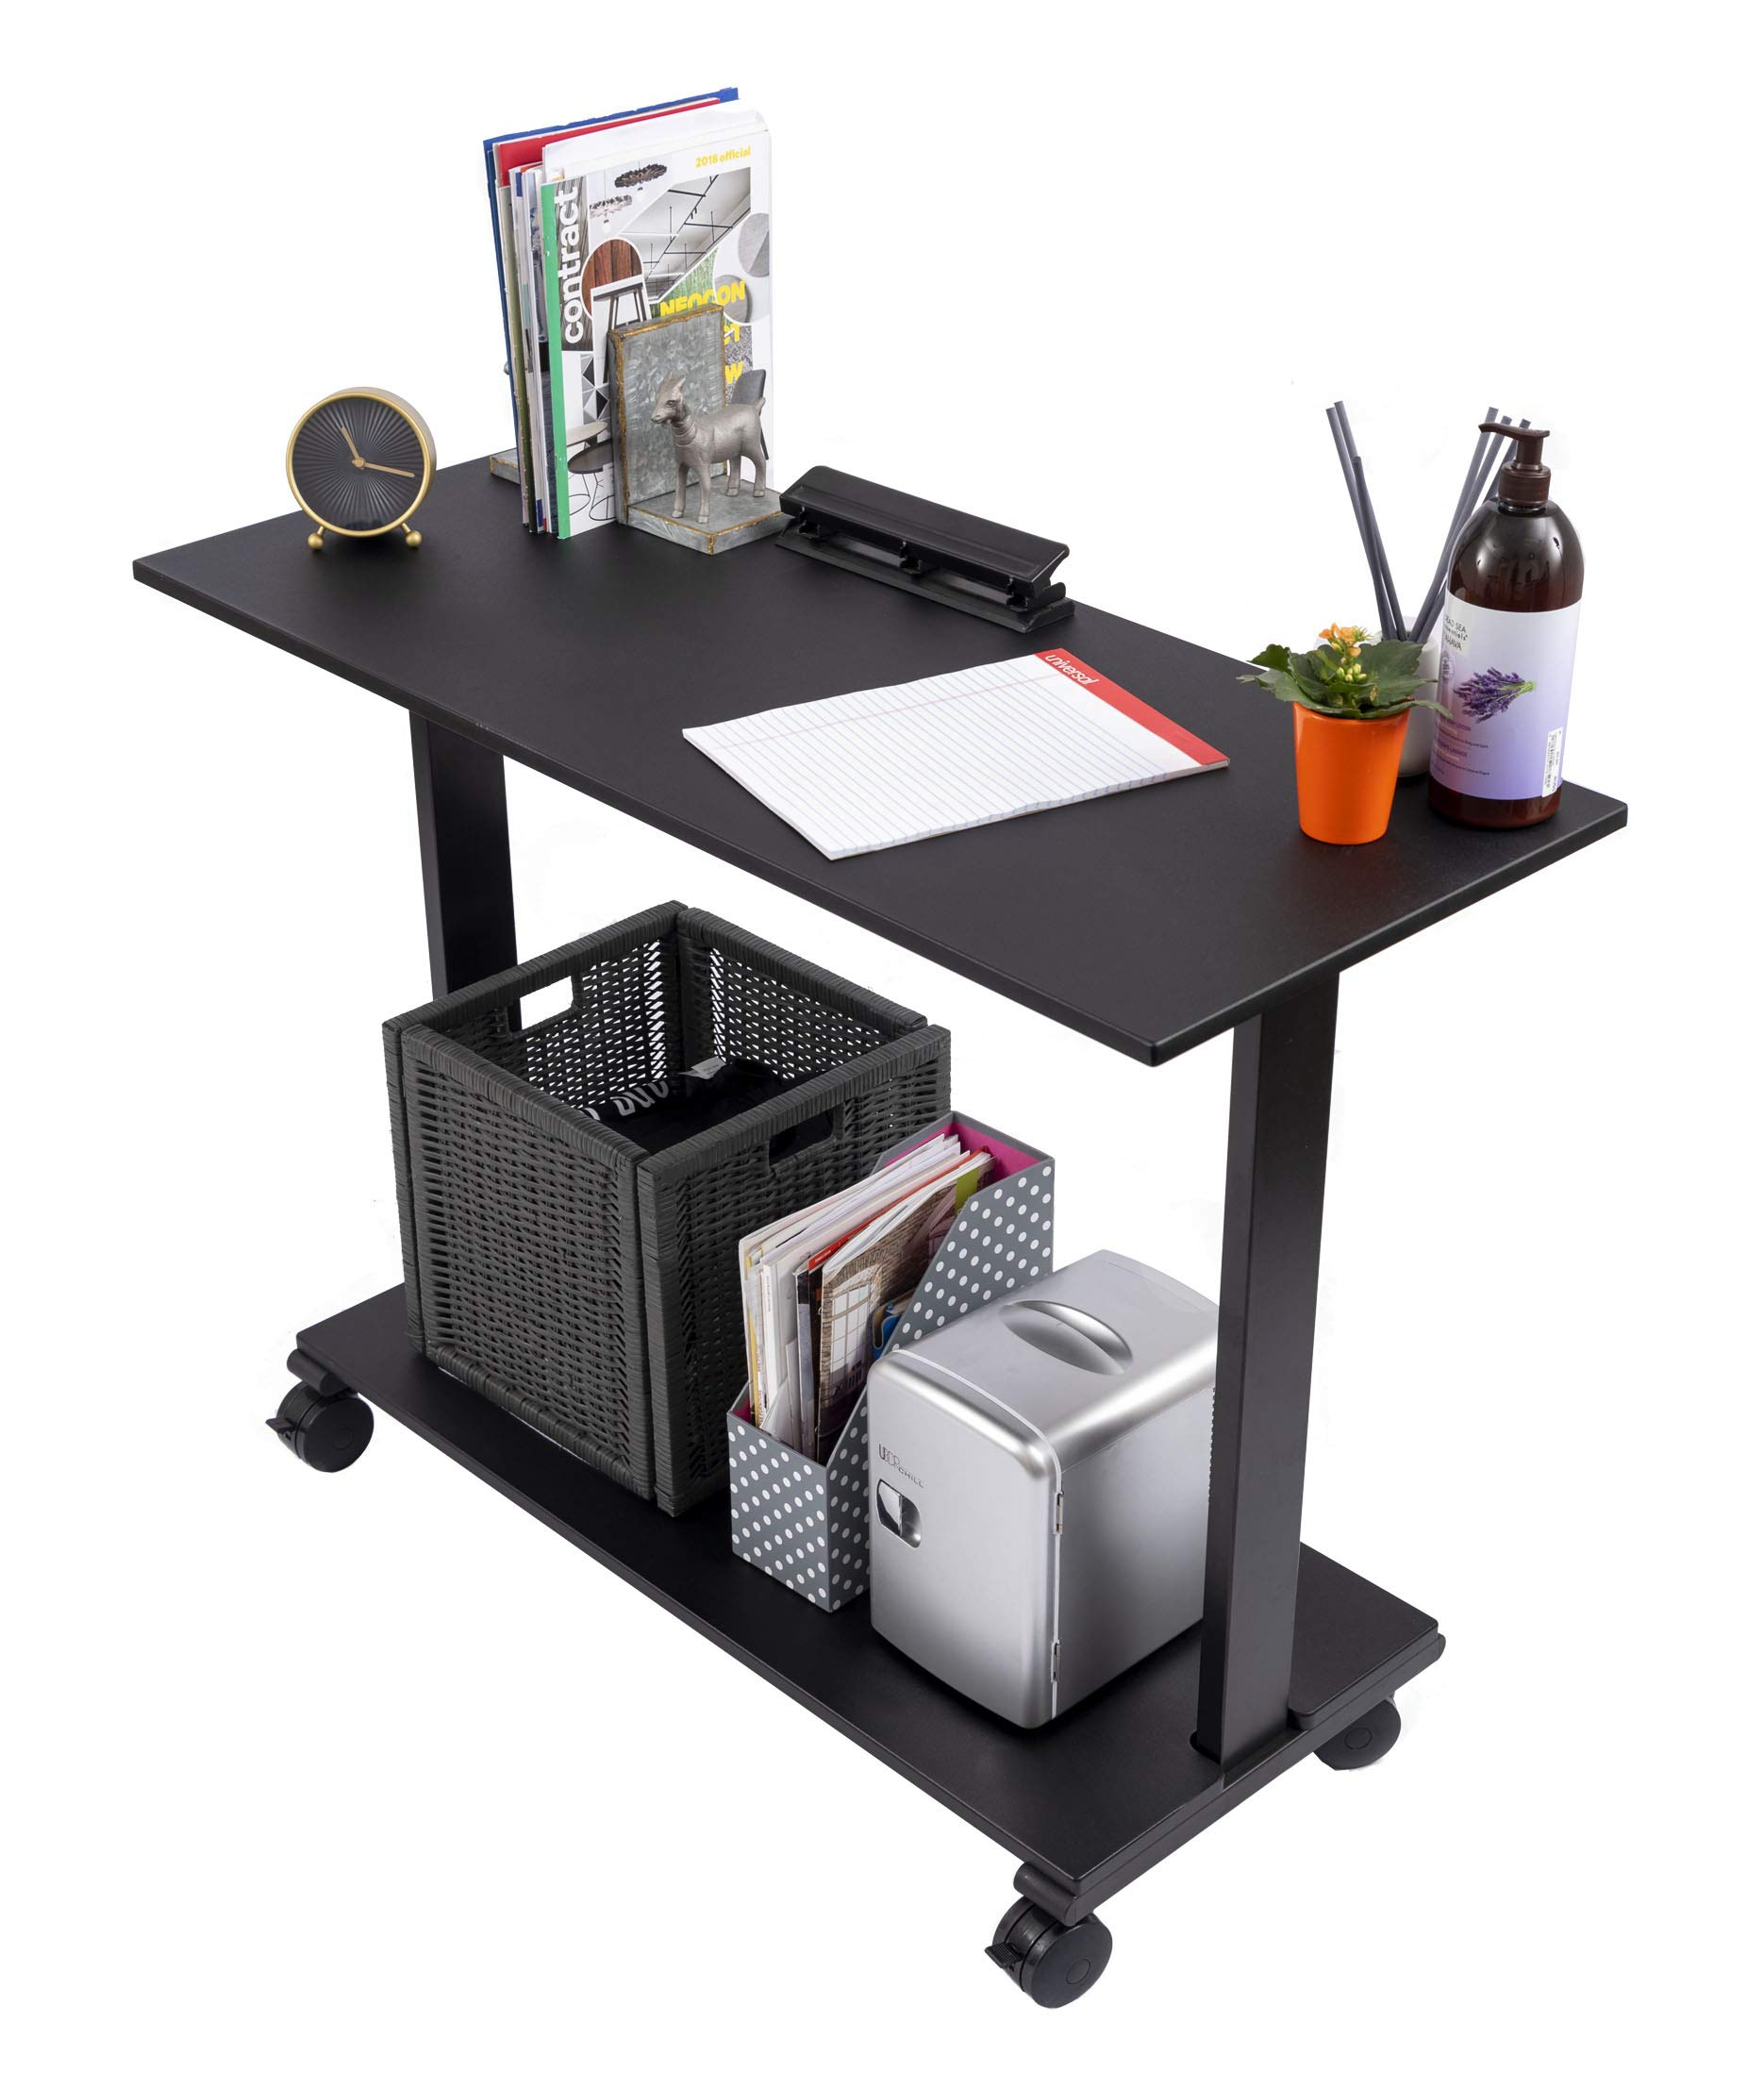 Stand Up Desk Store Two Level Rolling Printer Stand/Desk Shelf | Increase Usable Desk Space While Making Room for a Printer and Supplies (42'', Black) by Stand Up Desk Store